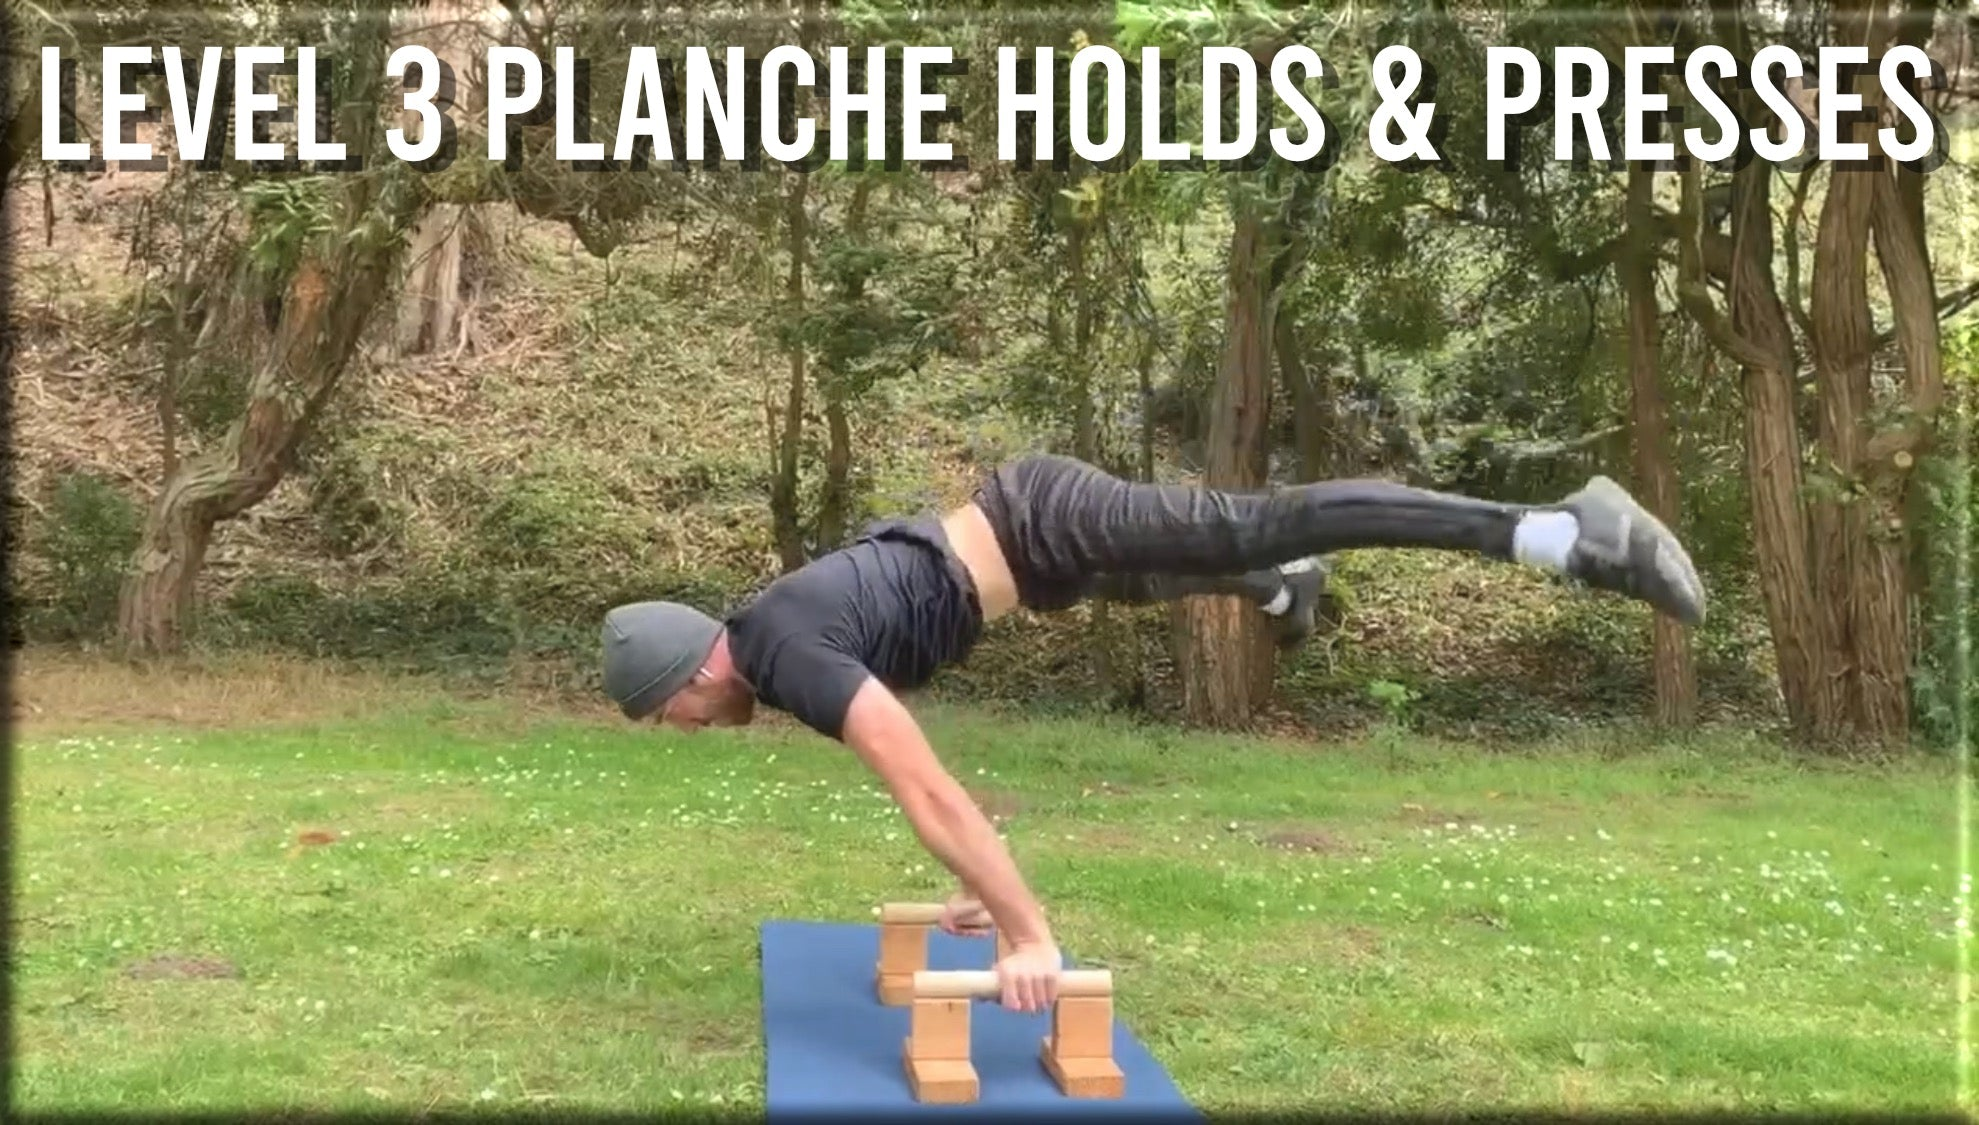 Level 3 Planche Holds & Presses